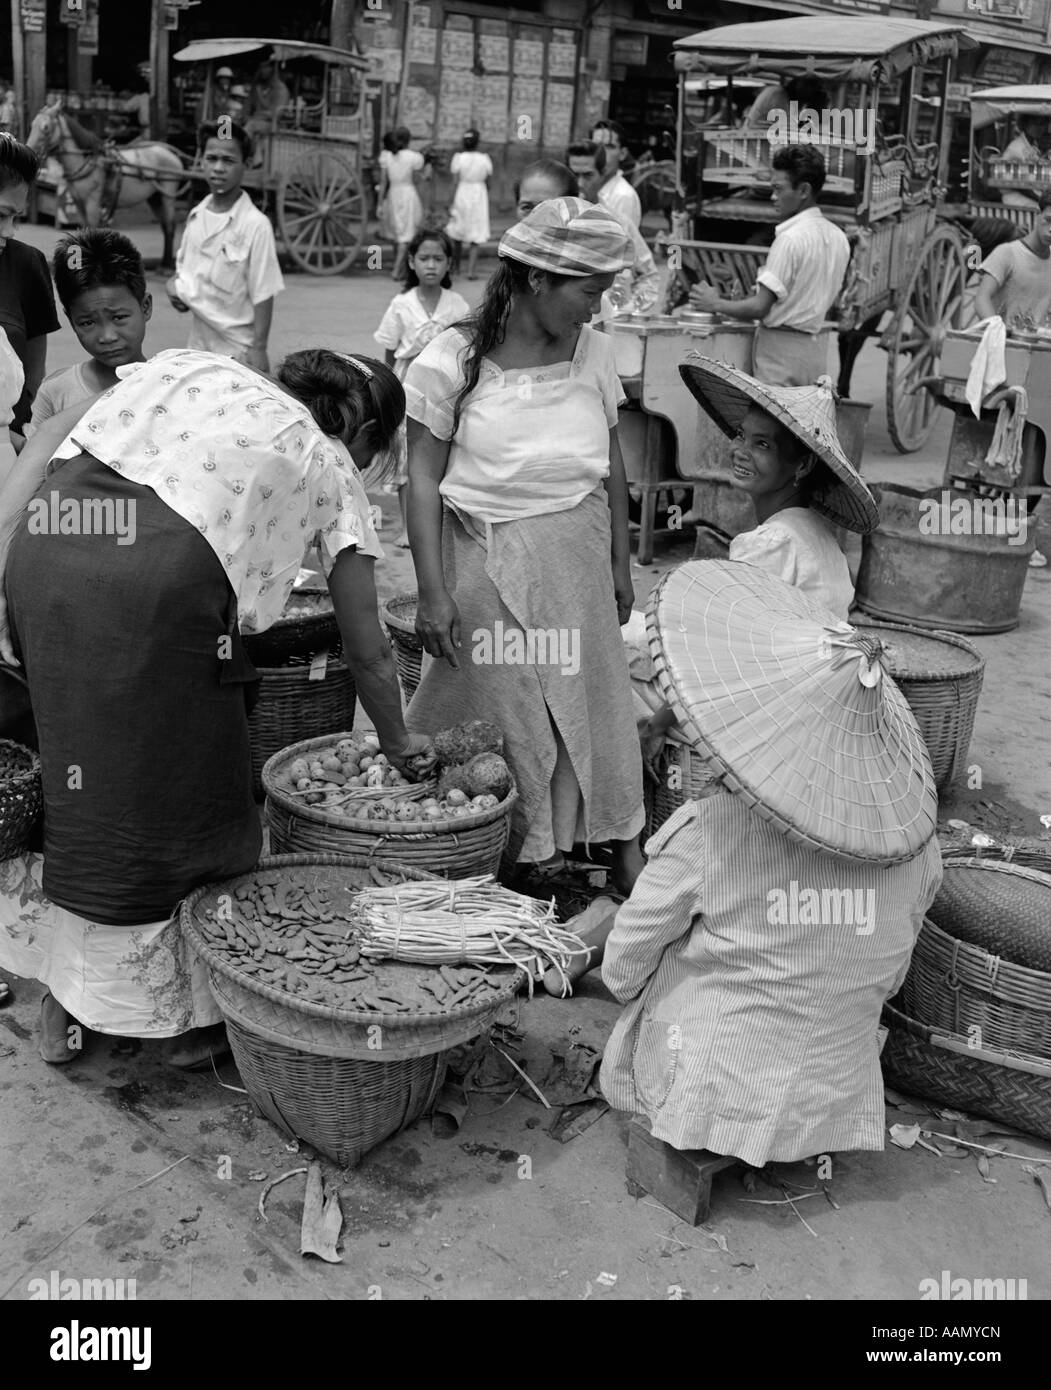 1930s 1940s Group Of Women In Native Food Vegetable Market